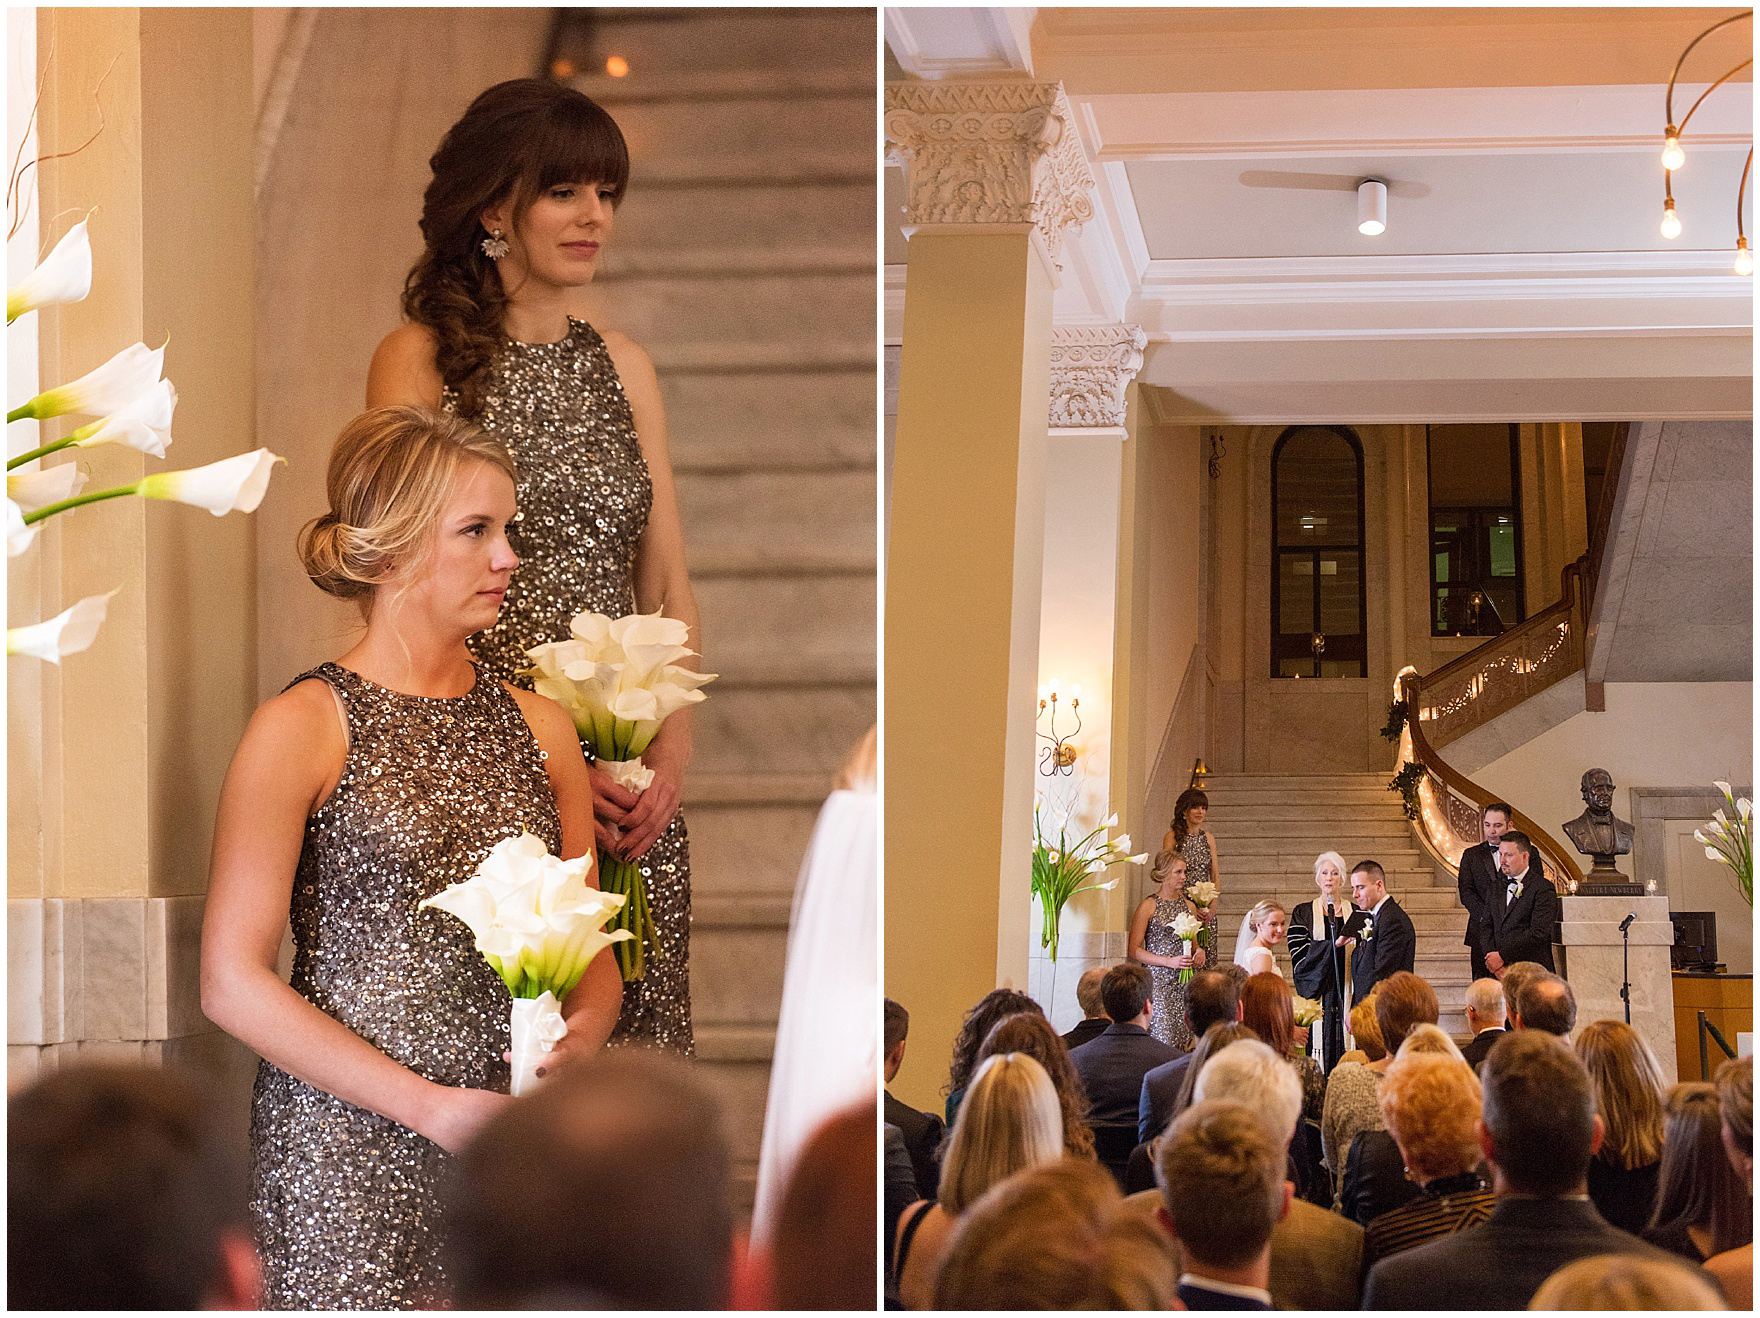 The maid of honor listens during a Newberry Library Chicago wedding.